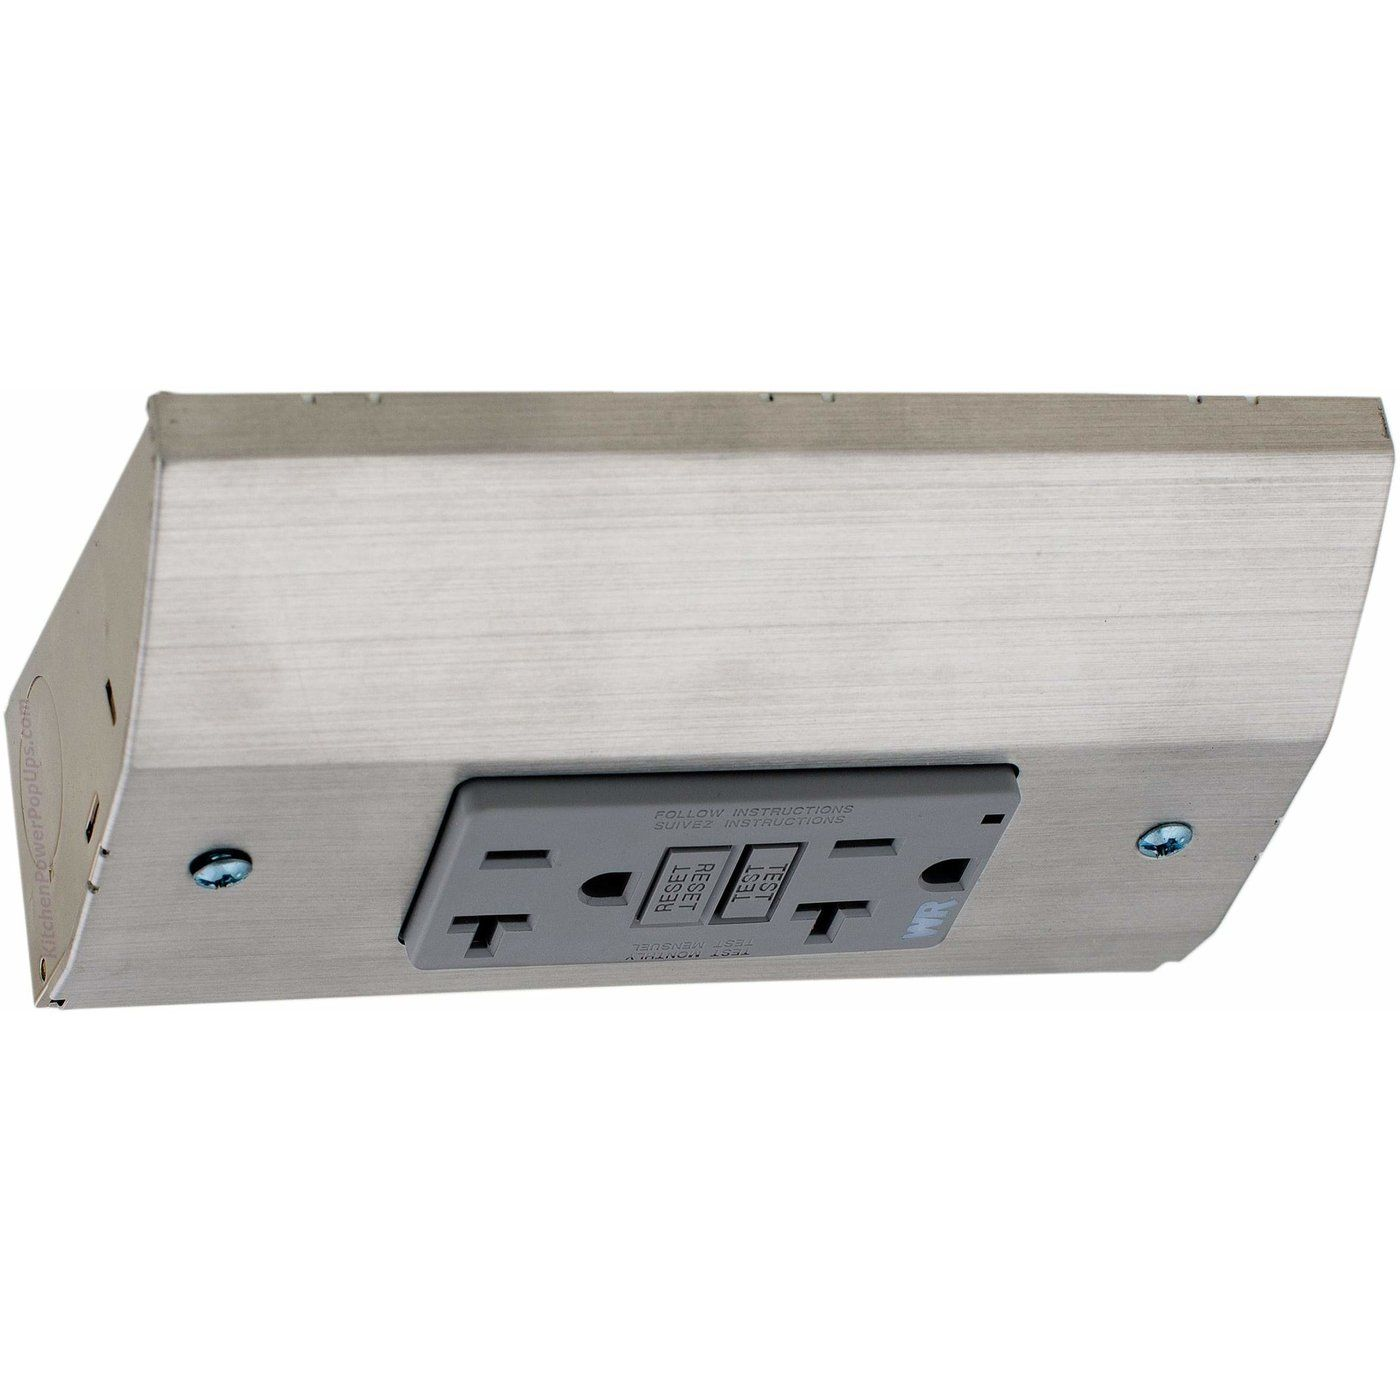 Under Cabinet Angled Power Strip Low Profile 20a Gfi 2 Plugs White Under Cabinet Outlets Power Strip Under Cabinet